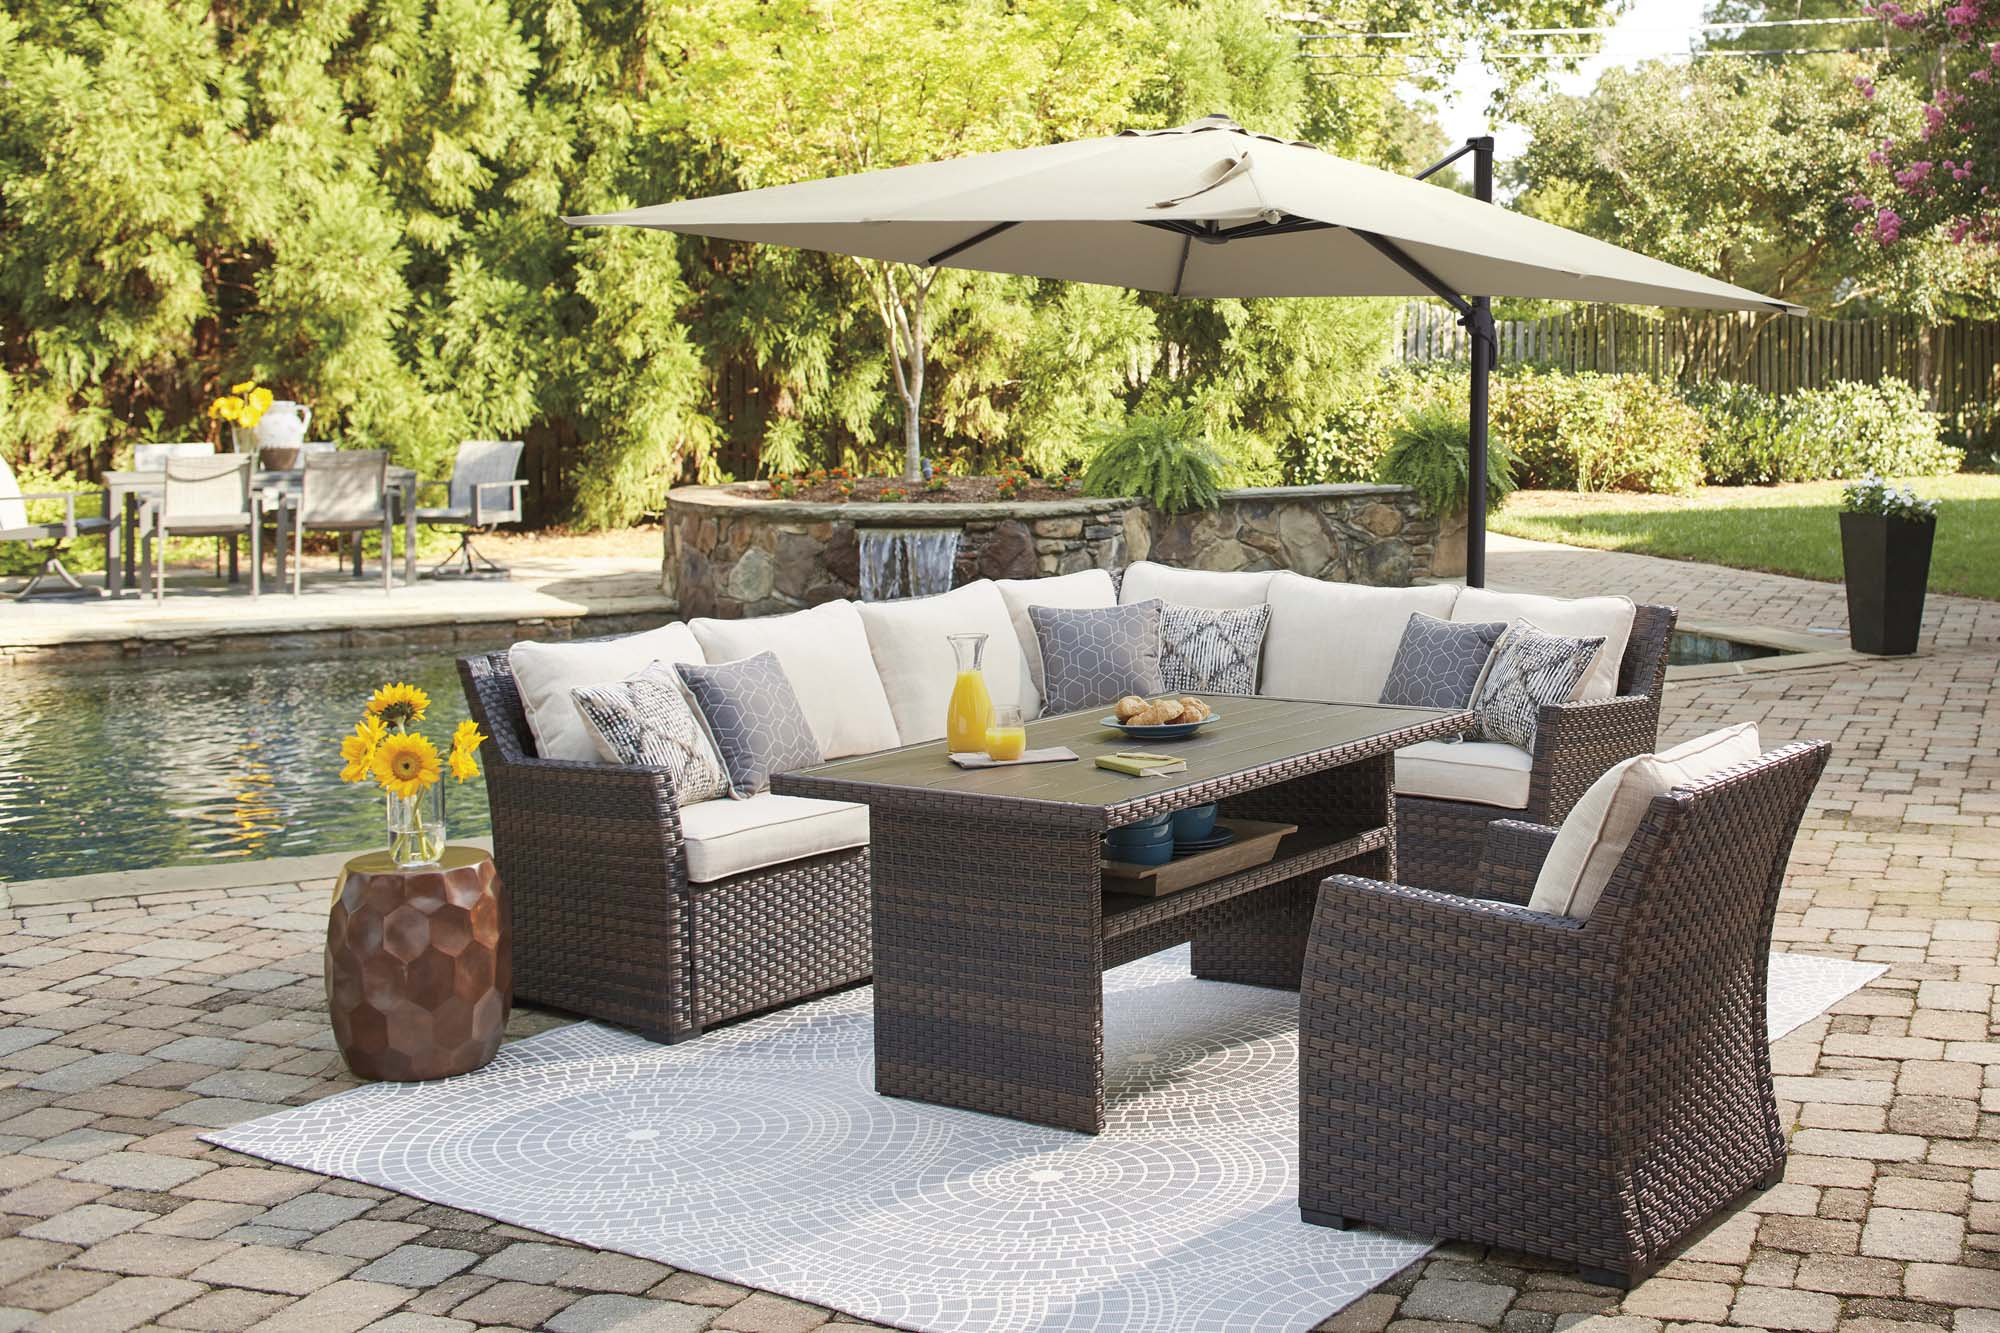 Easy Isle Outdoor 3 Piece Sectional Set w/Cushion - MJM Furniture